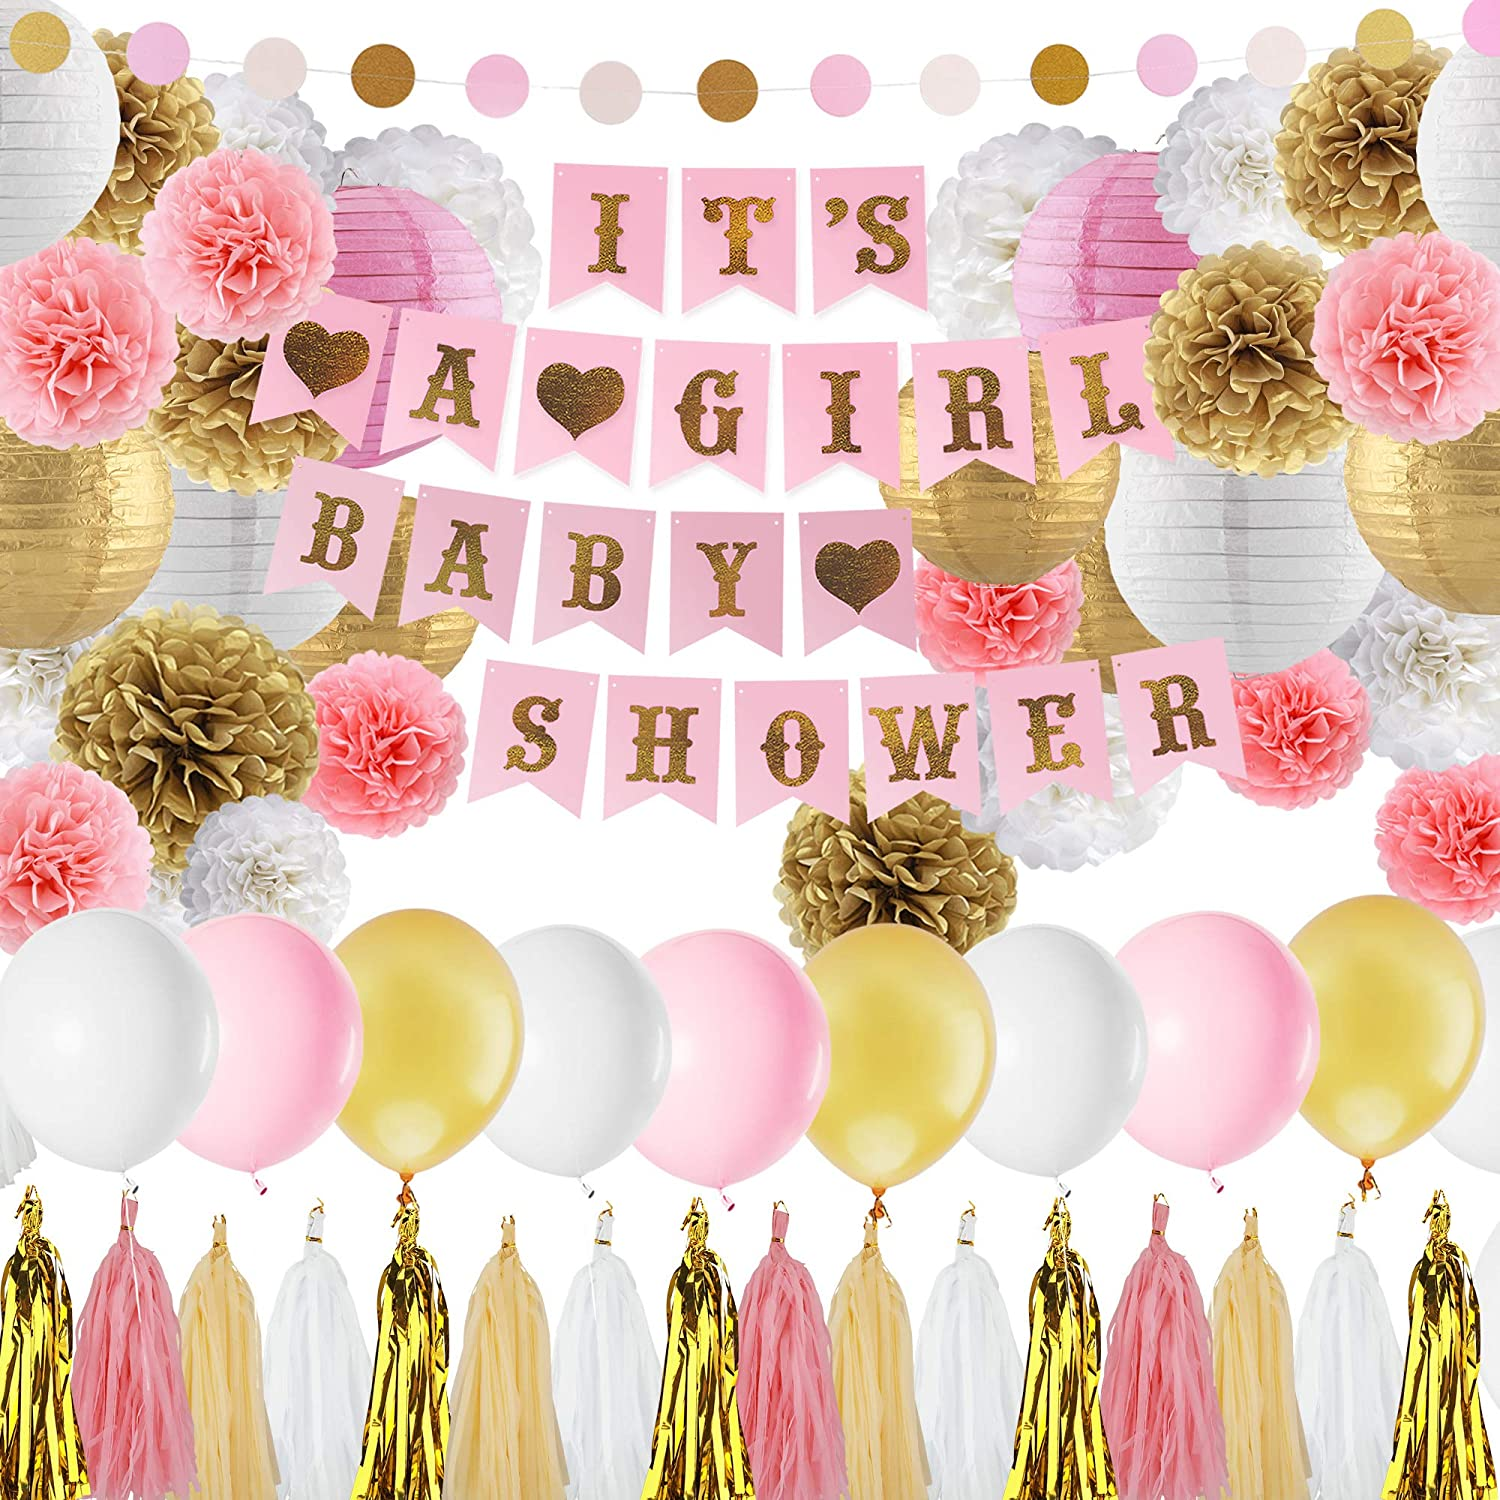 Baby Shower Decorations for Girl Pink and Gold Baby Girl Shower Decorating  Kits with Banner, Balloons, Pom Poms Flowers, Paper Lantern, Paper Garland,  ...